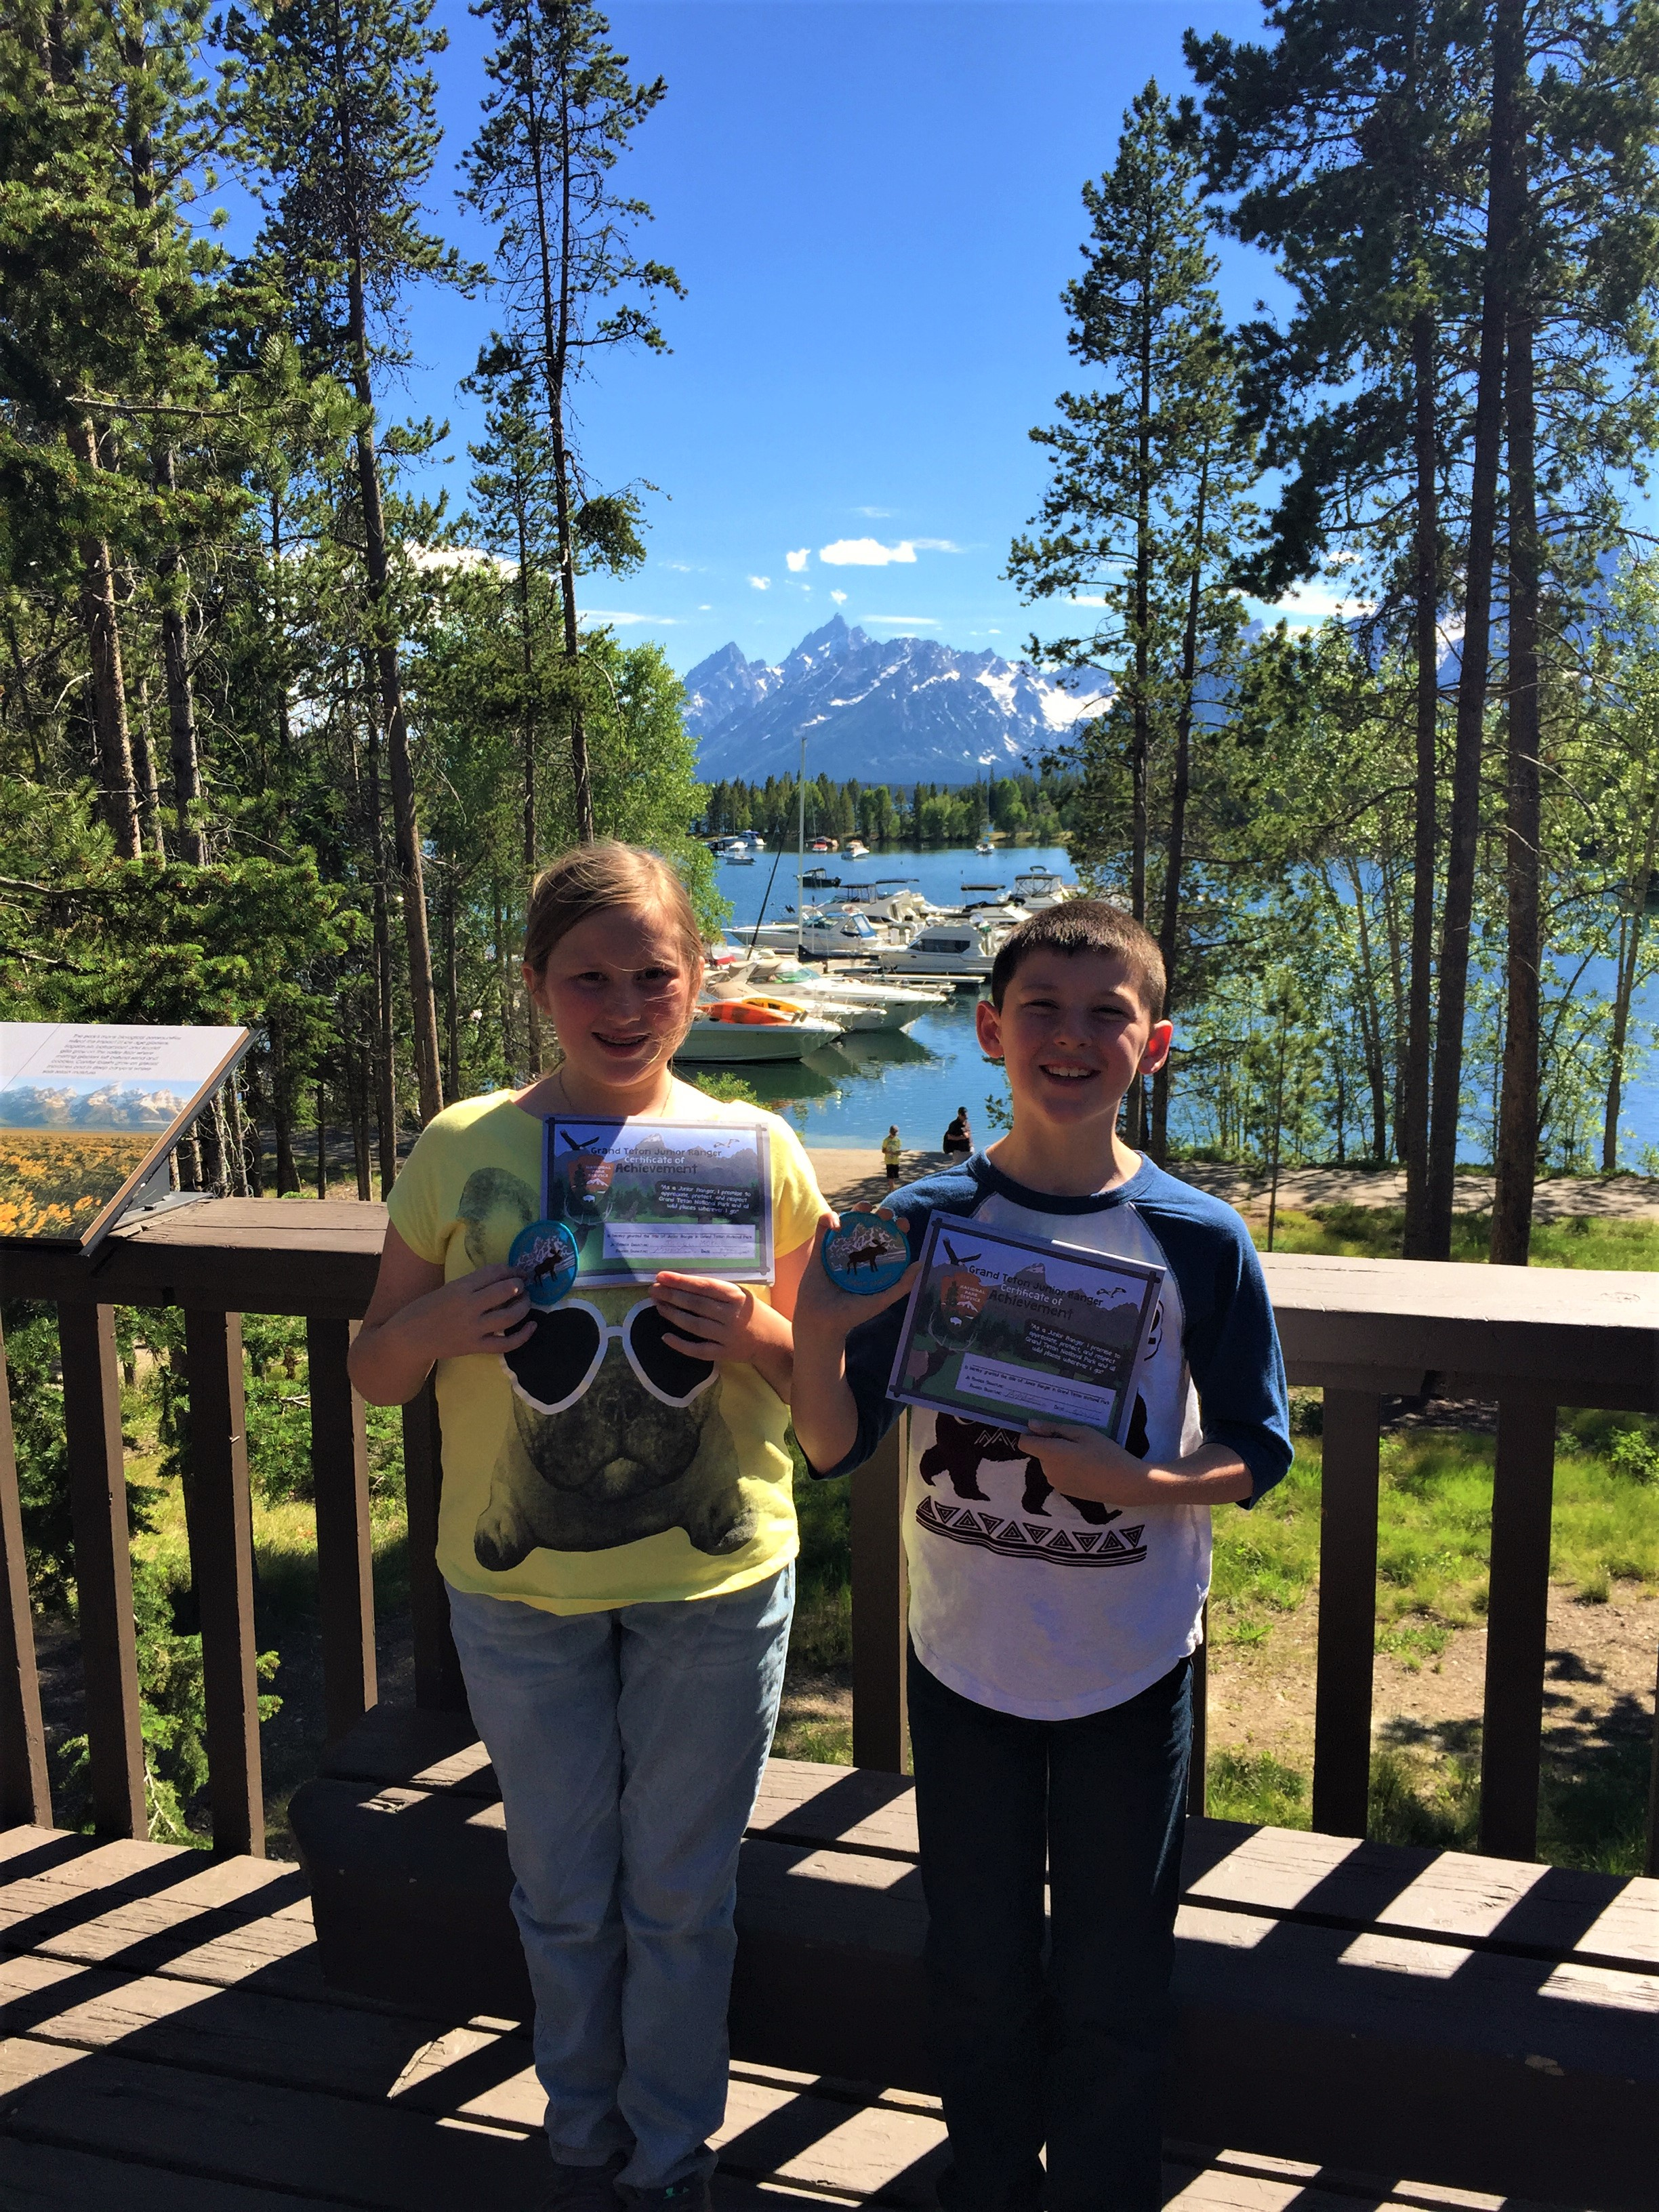 A Guide for Visiting Grand Teton National Park